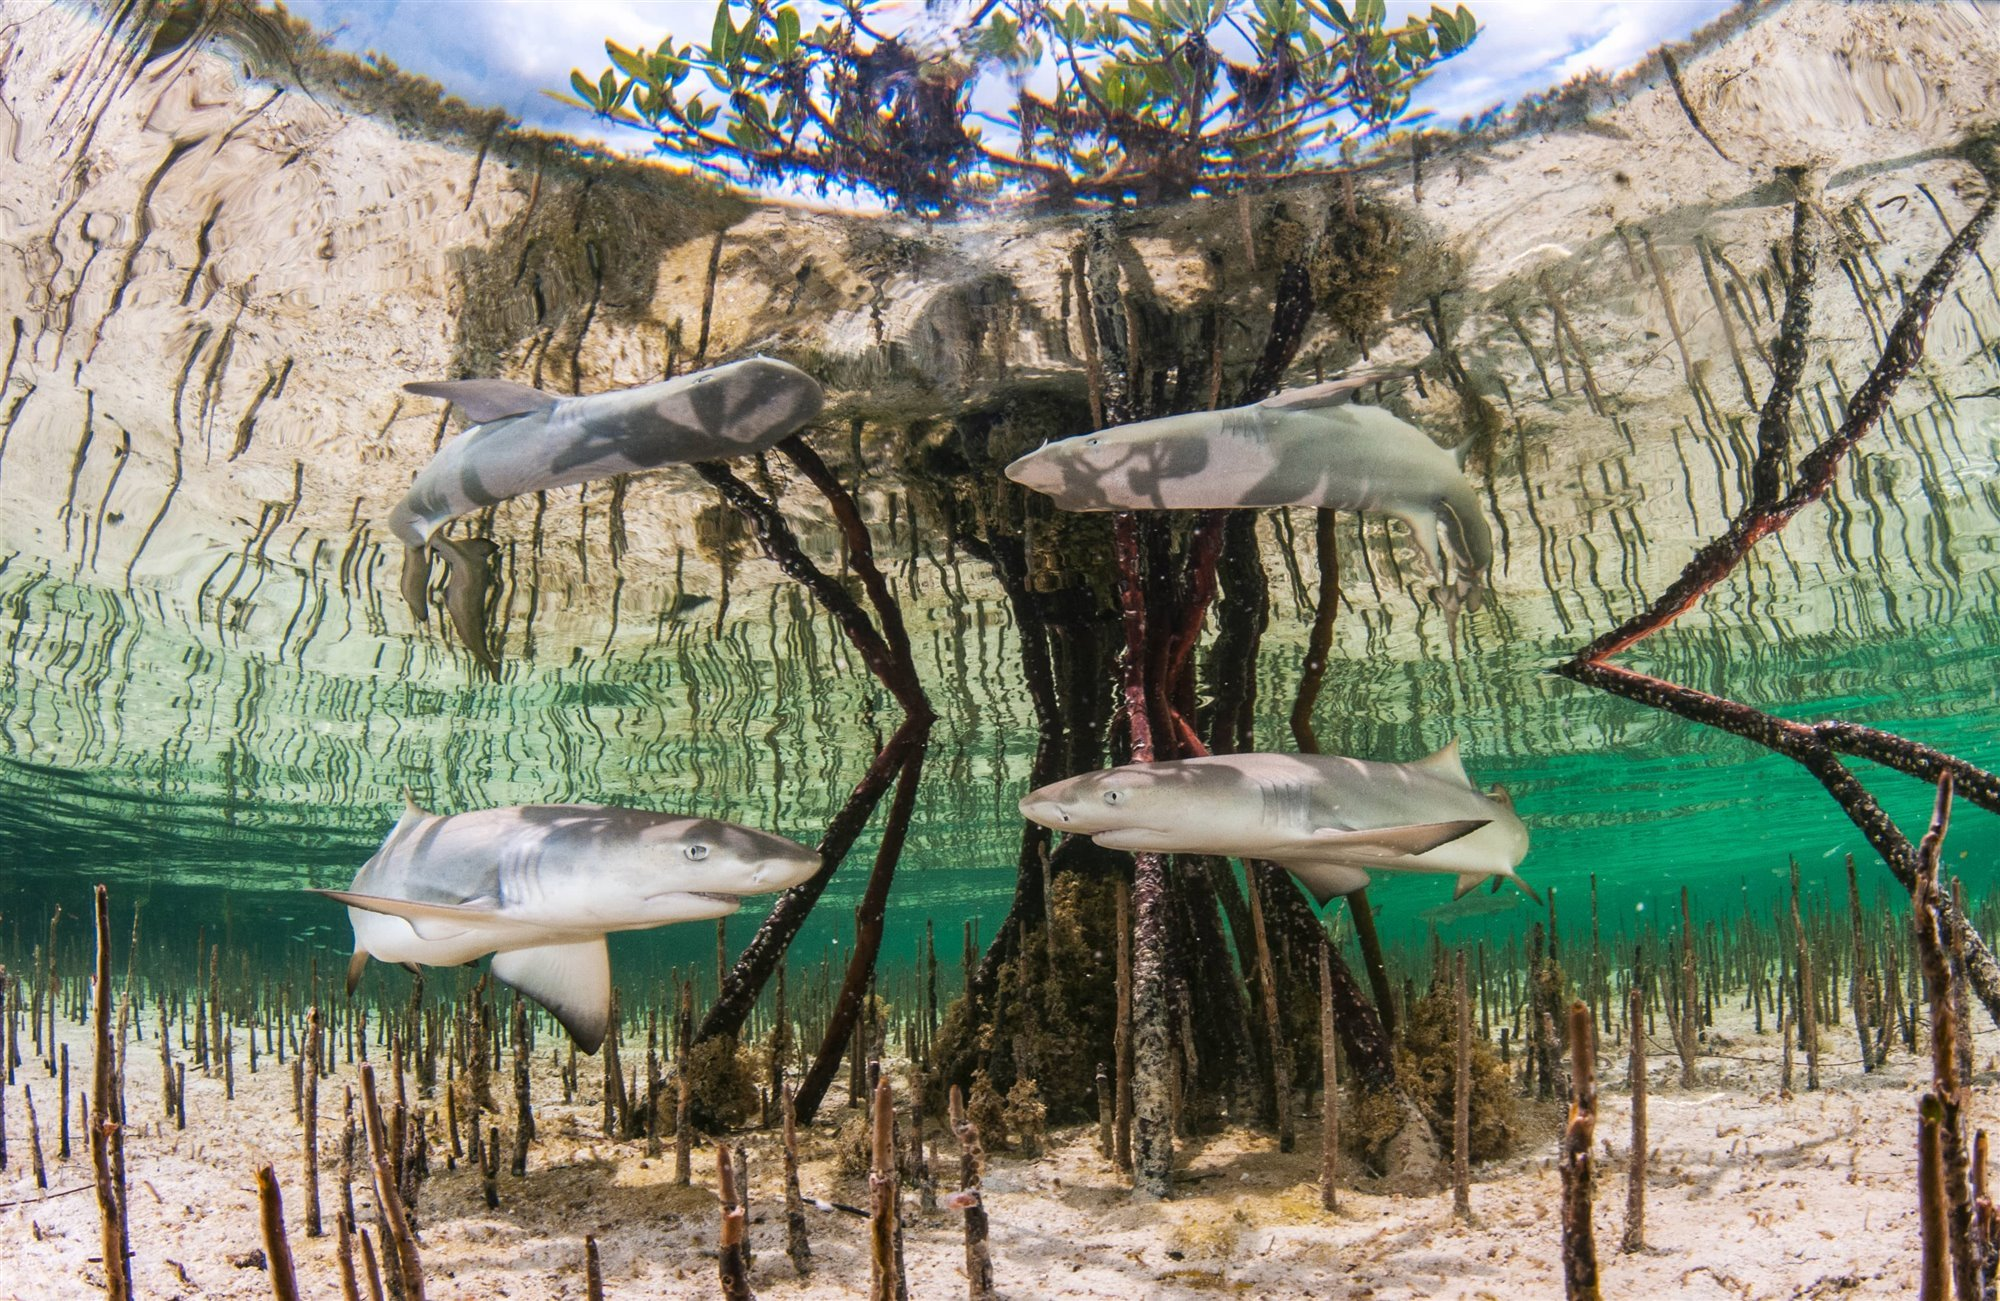 Lemon Shark Nursery